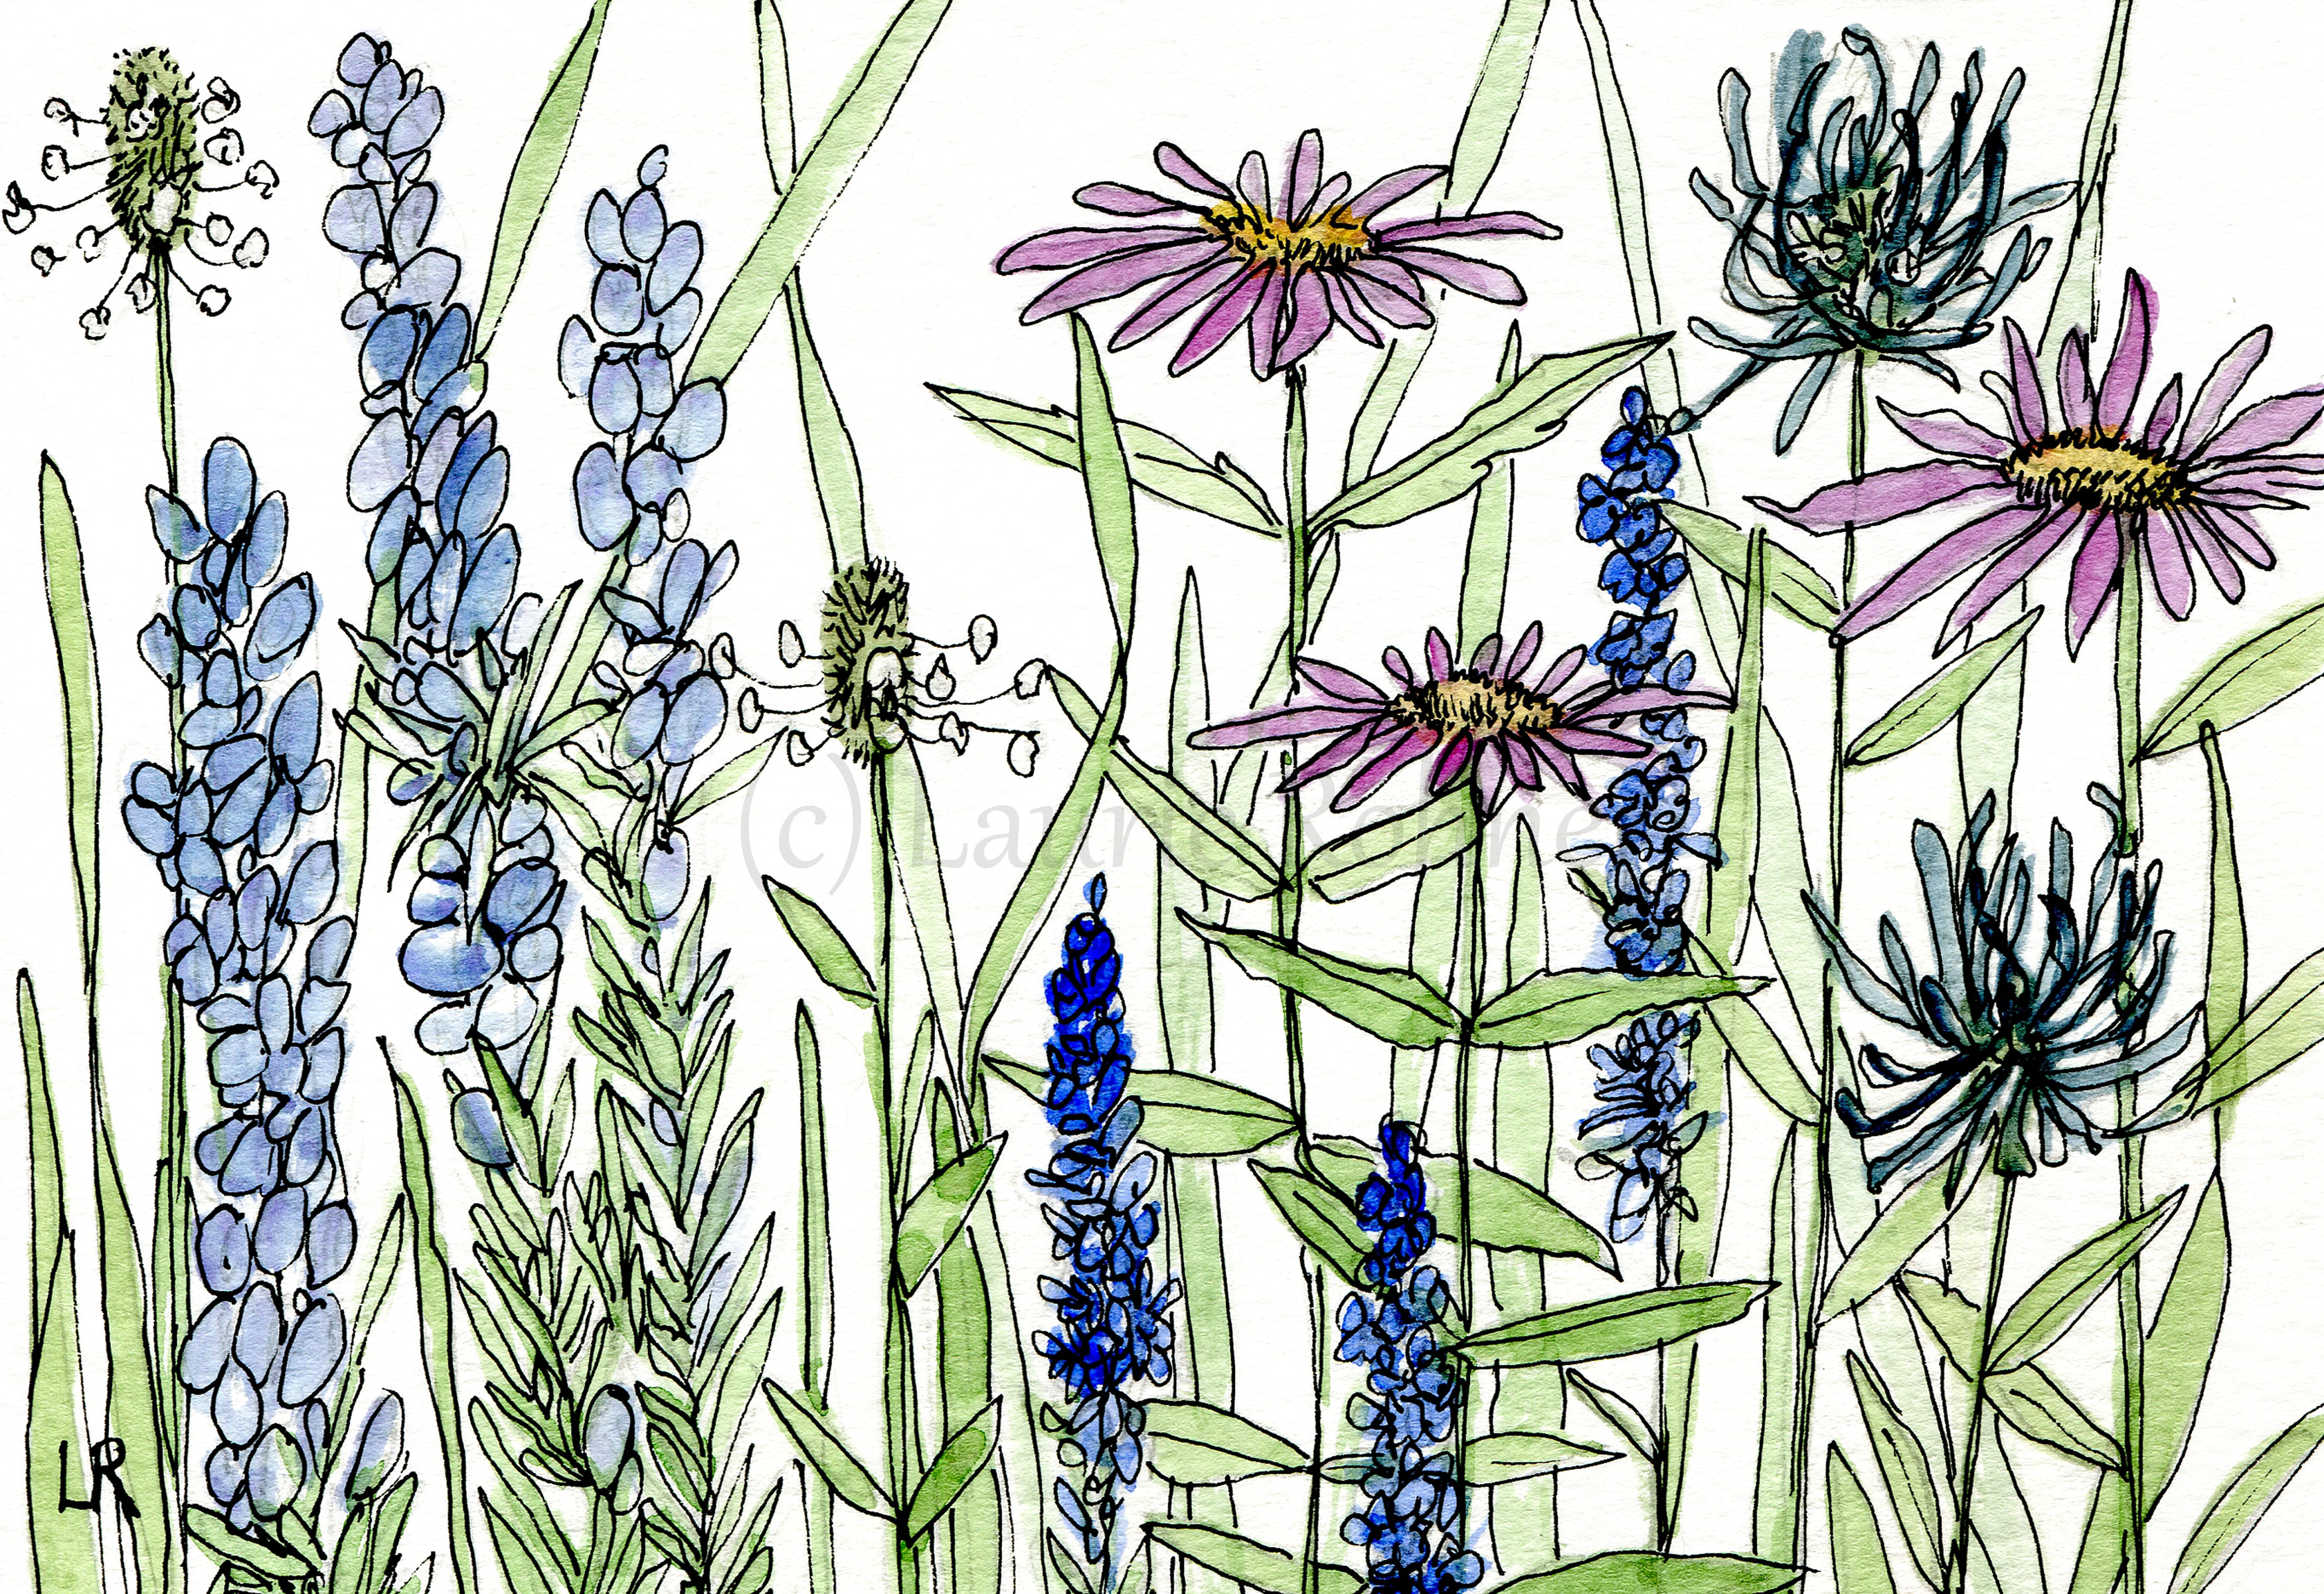 Watercolor Lavender Aster Wildflowers Blue Flowers Original Art Card with Envelope